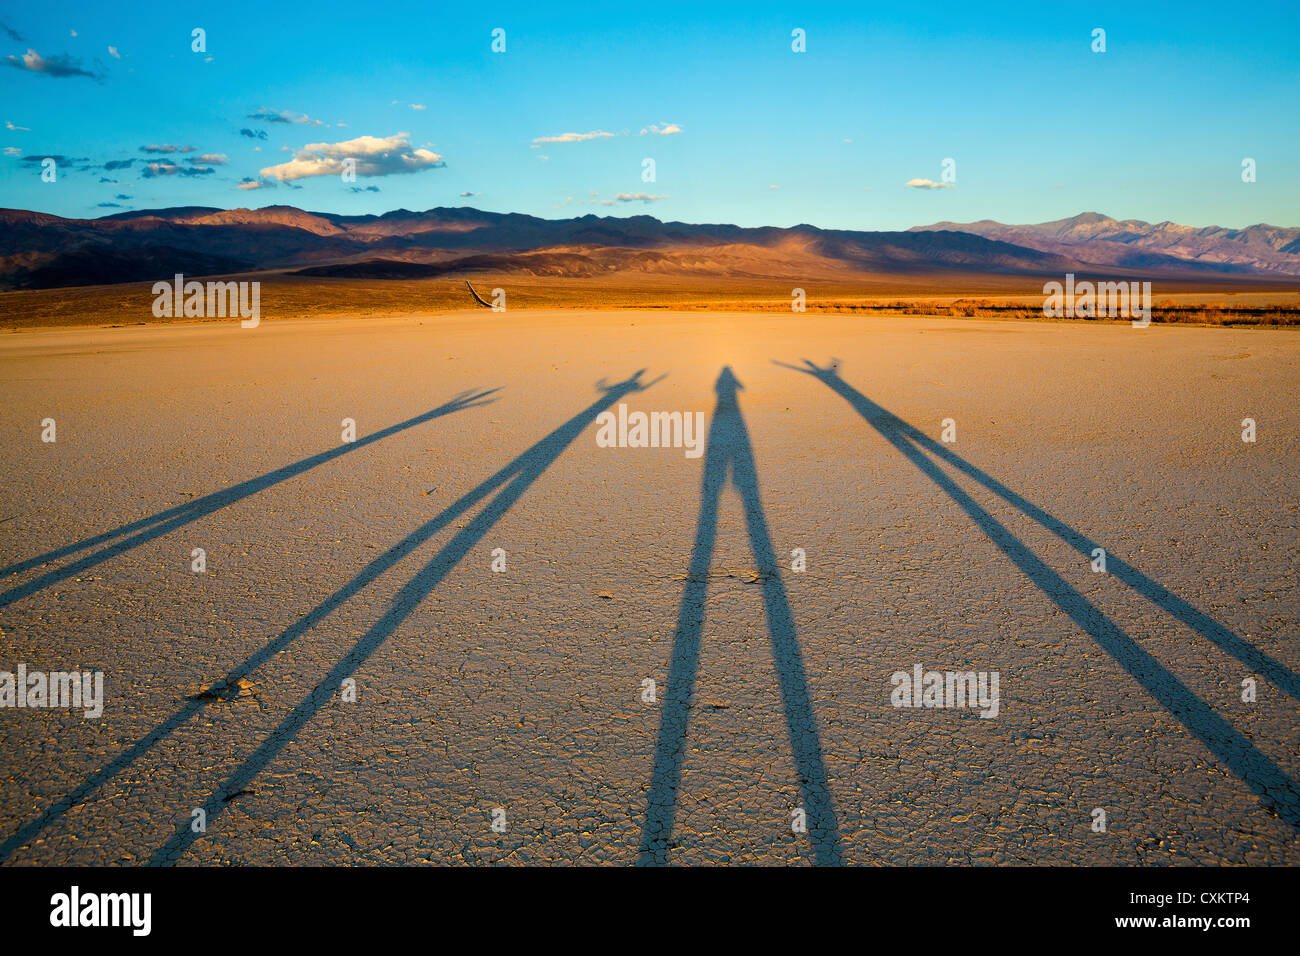 shadows on Death Valley National Park at sunset - Stock Image